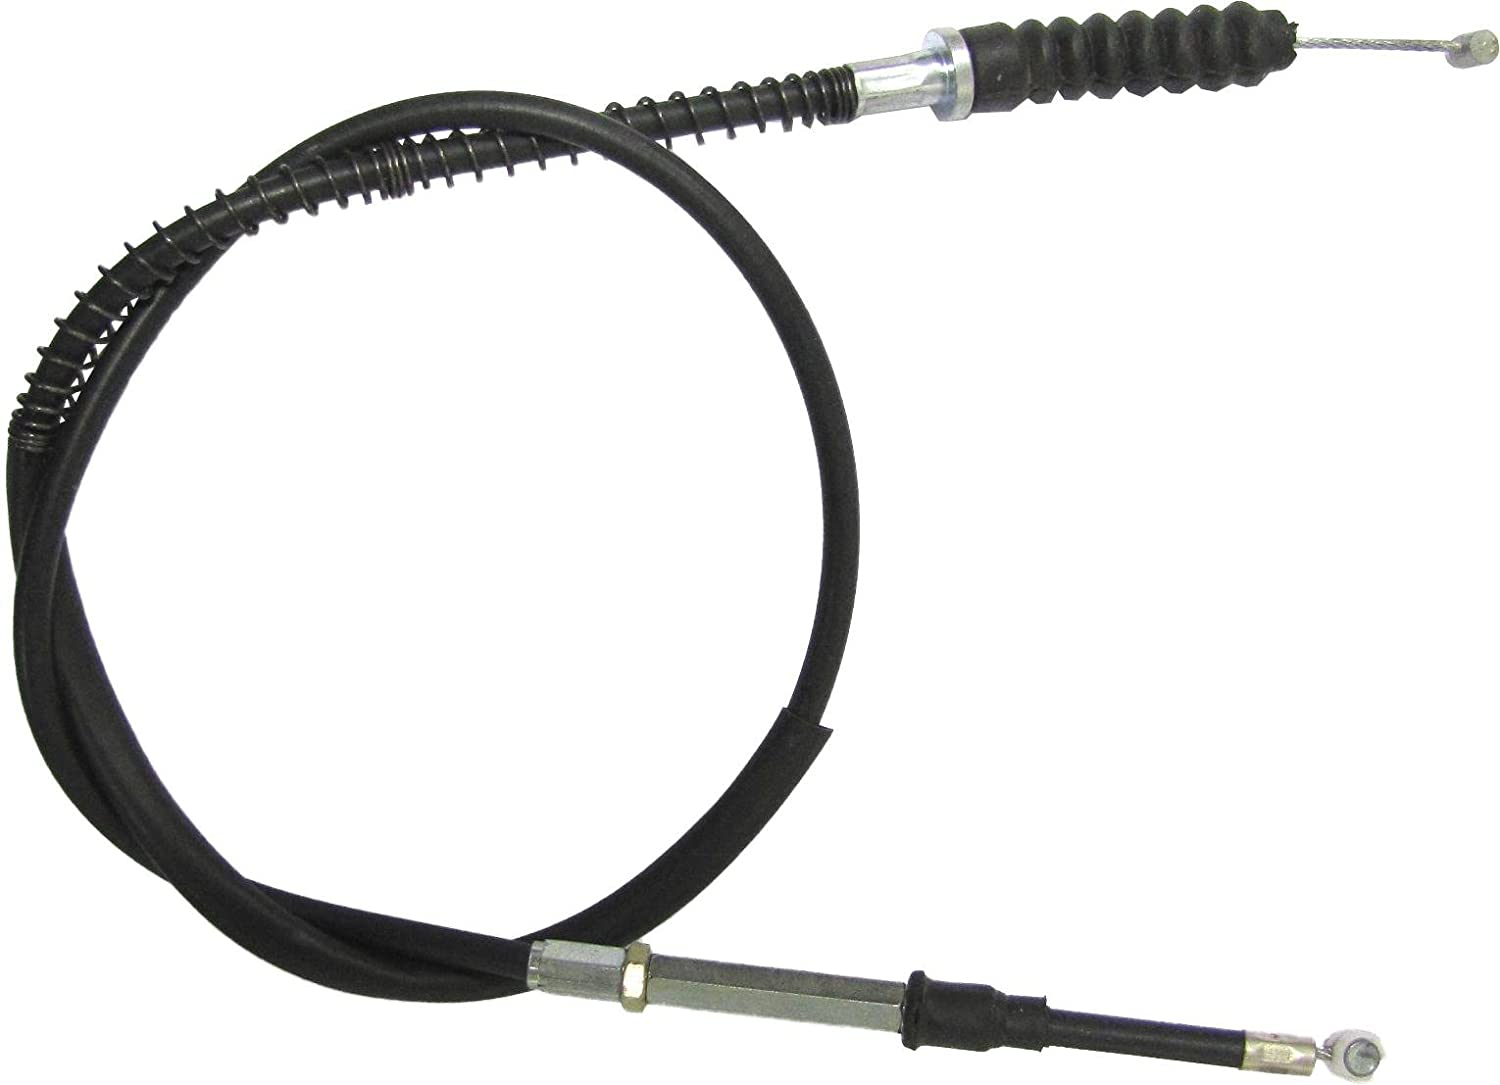 Kawasaki KX 85 Clutch Cable 2001-2013 Hi Level